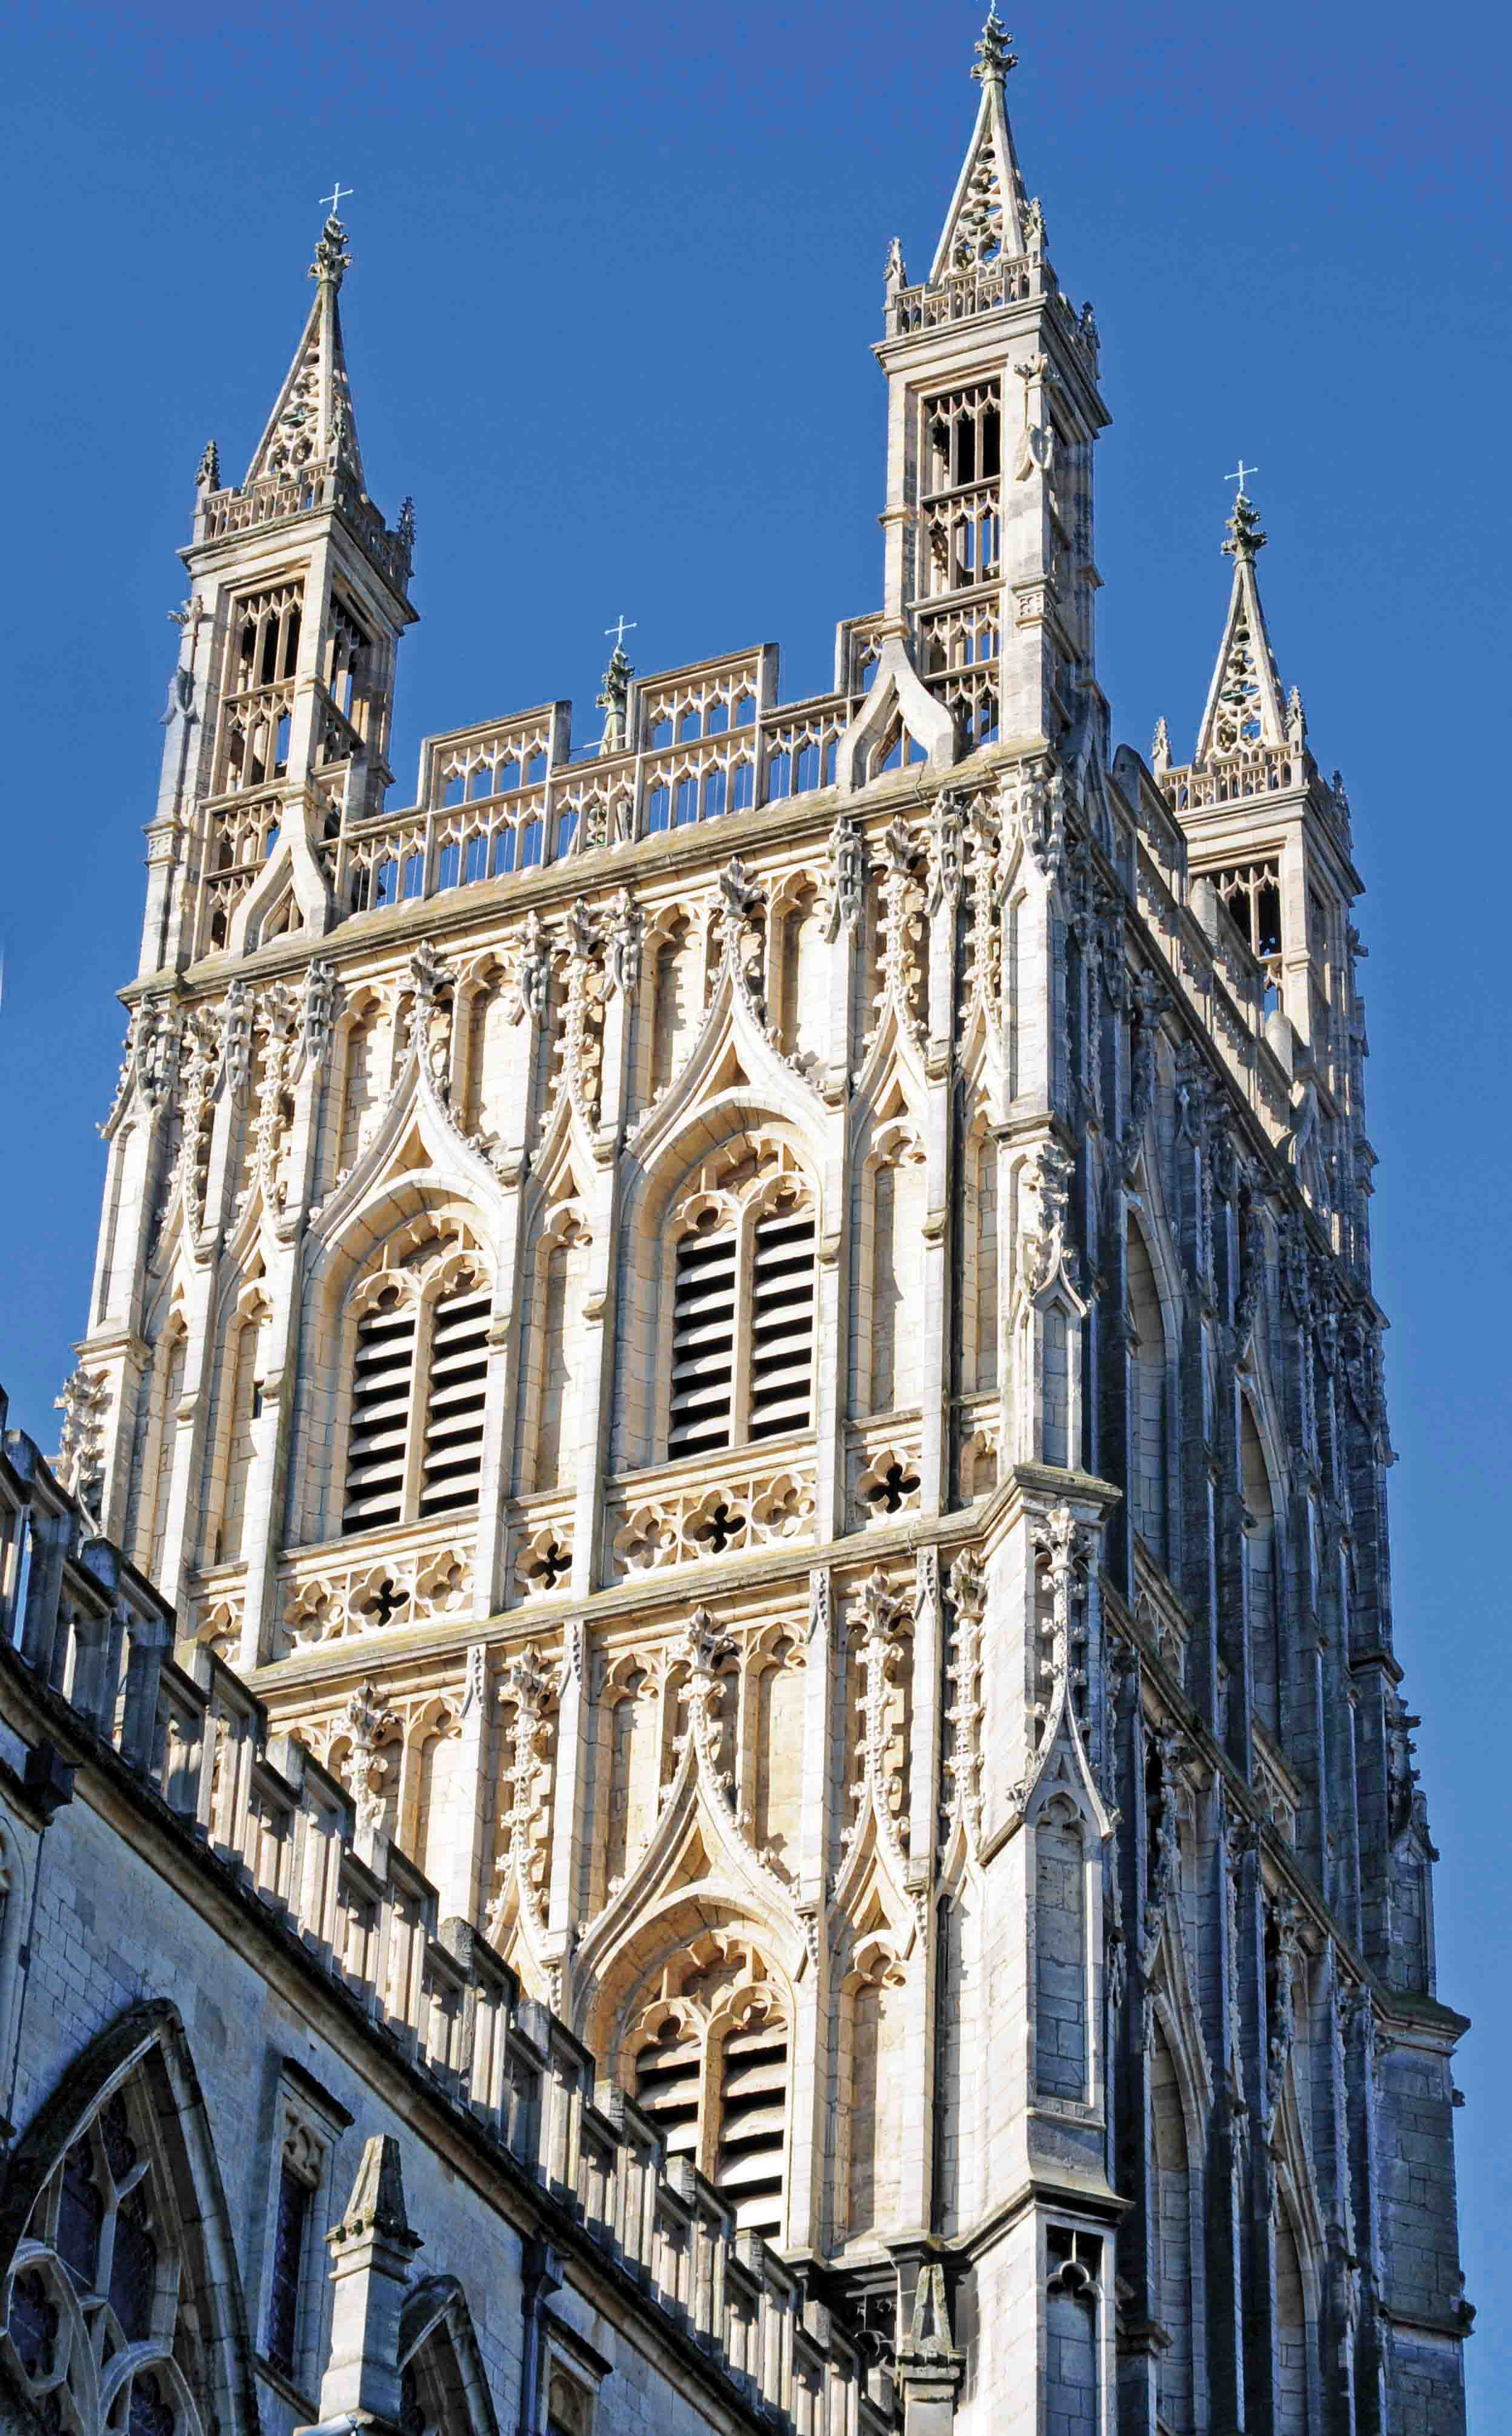 Central Tower, Gloucester Cathedral, England.jpg